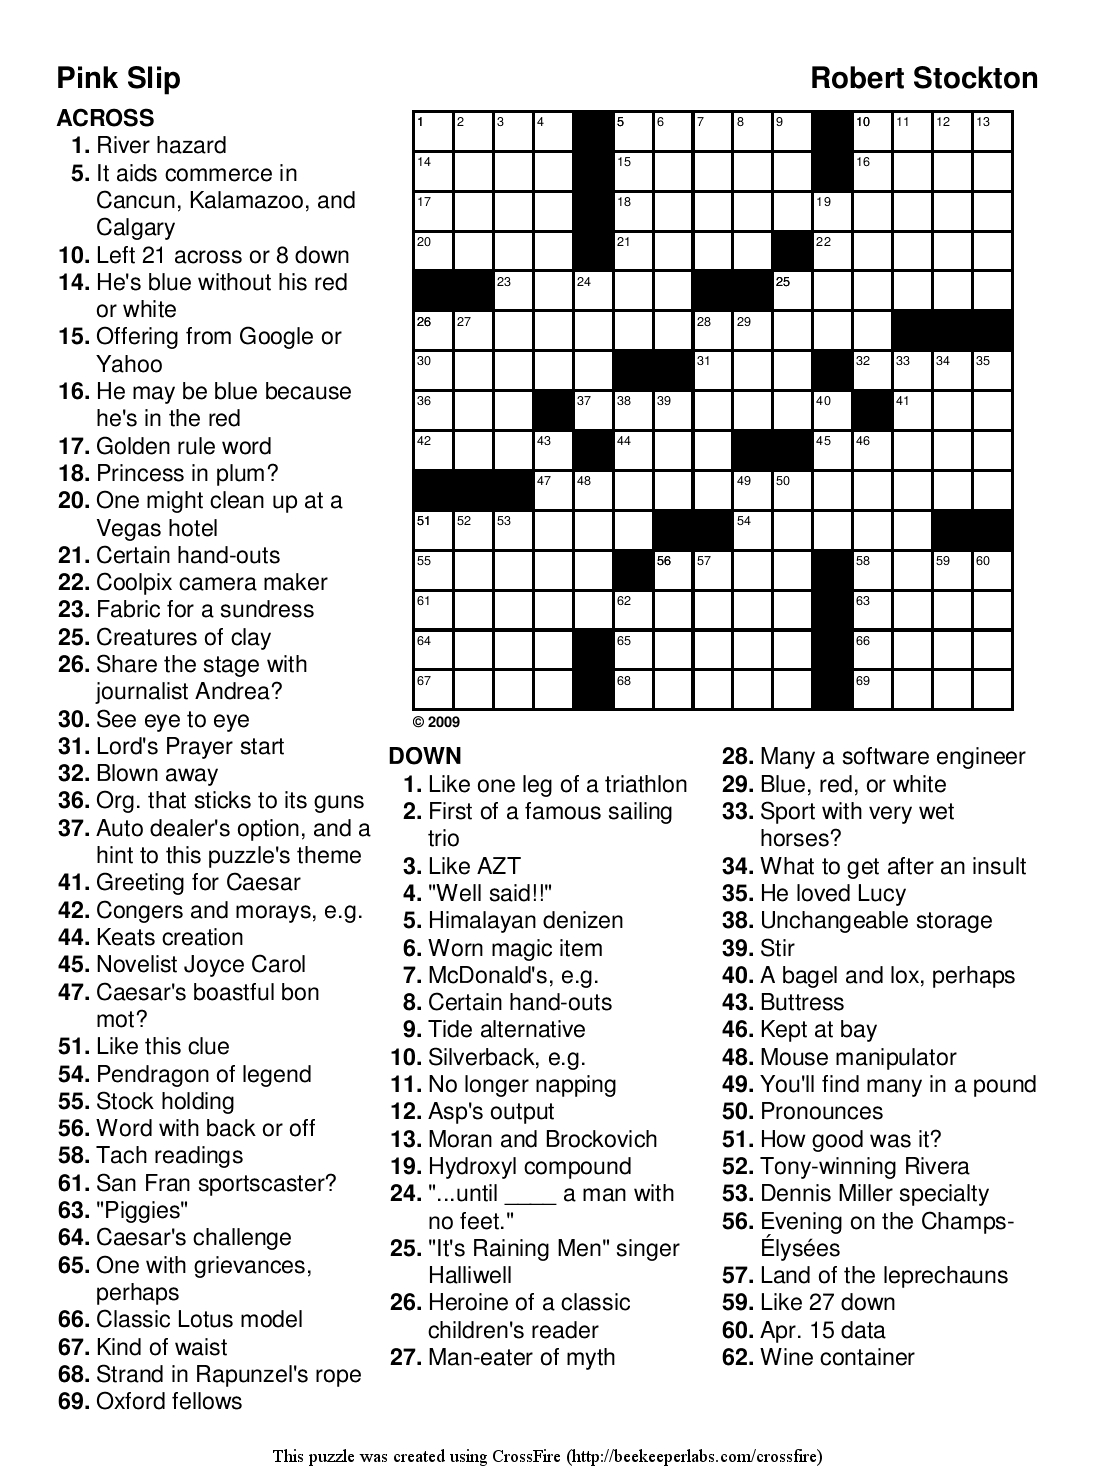 Printable Puzzles For Adults | Easy Word Puzzles Printable Festivals - Printable Crossword Puzzles Adults Easy